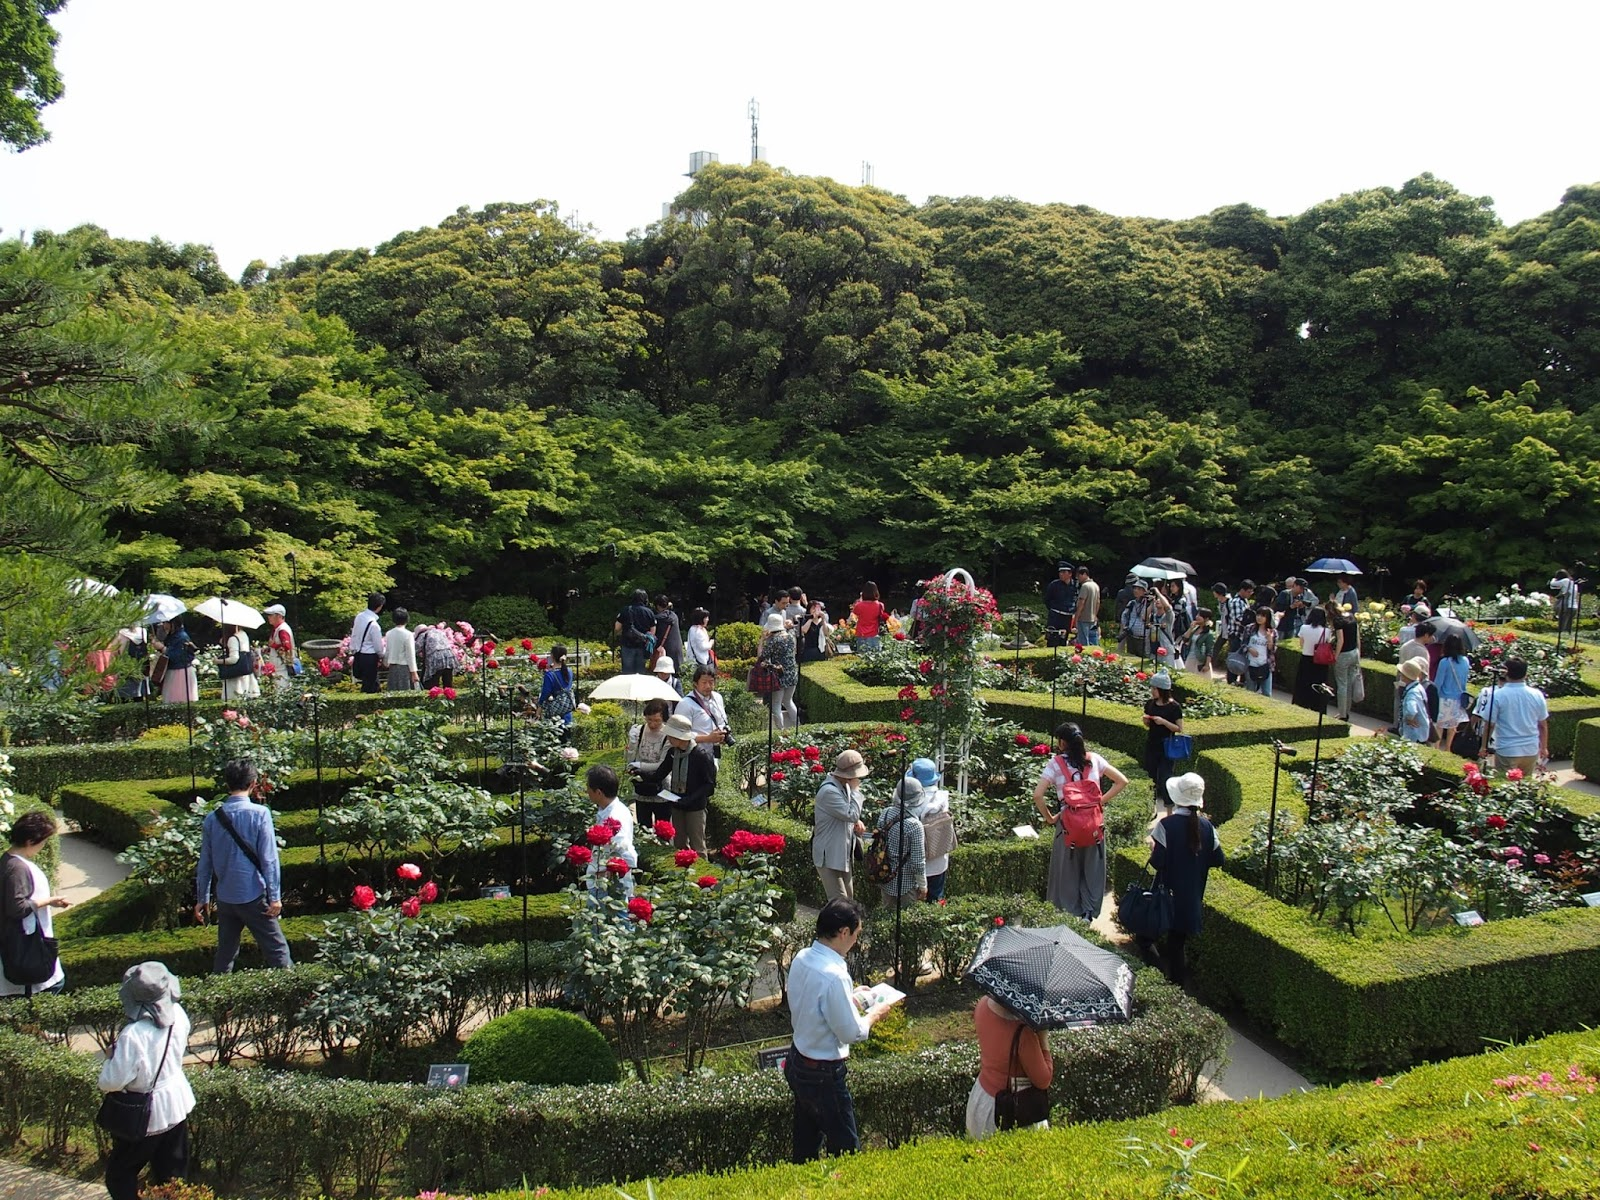 Attractive Kyu Furukawa Gardens Is A Beautiful Park Located In Kita, Tokyo, Near  Nishigahara Station. The Centerpiece Of The Park Is Its Western Style  Residence, ...